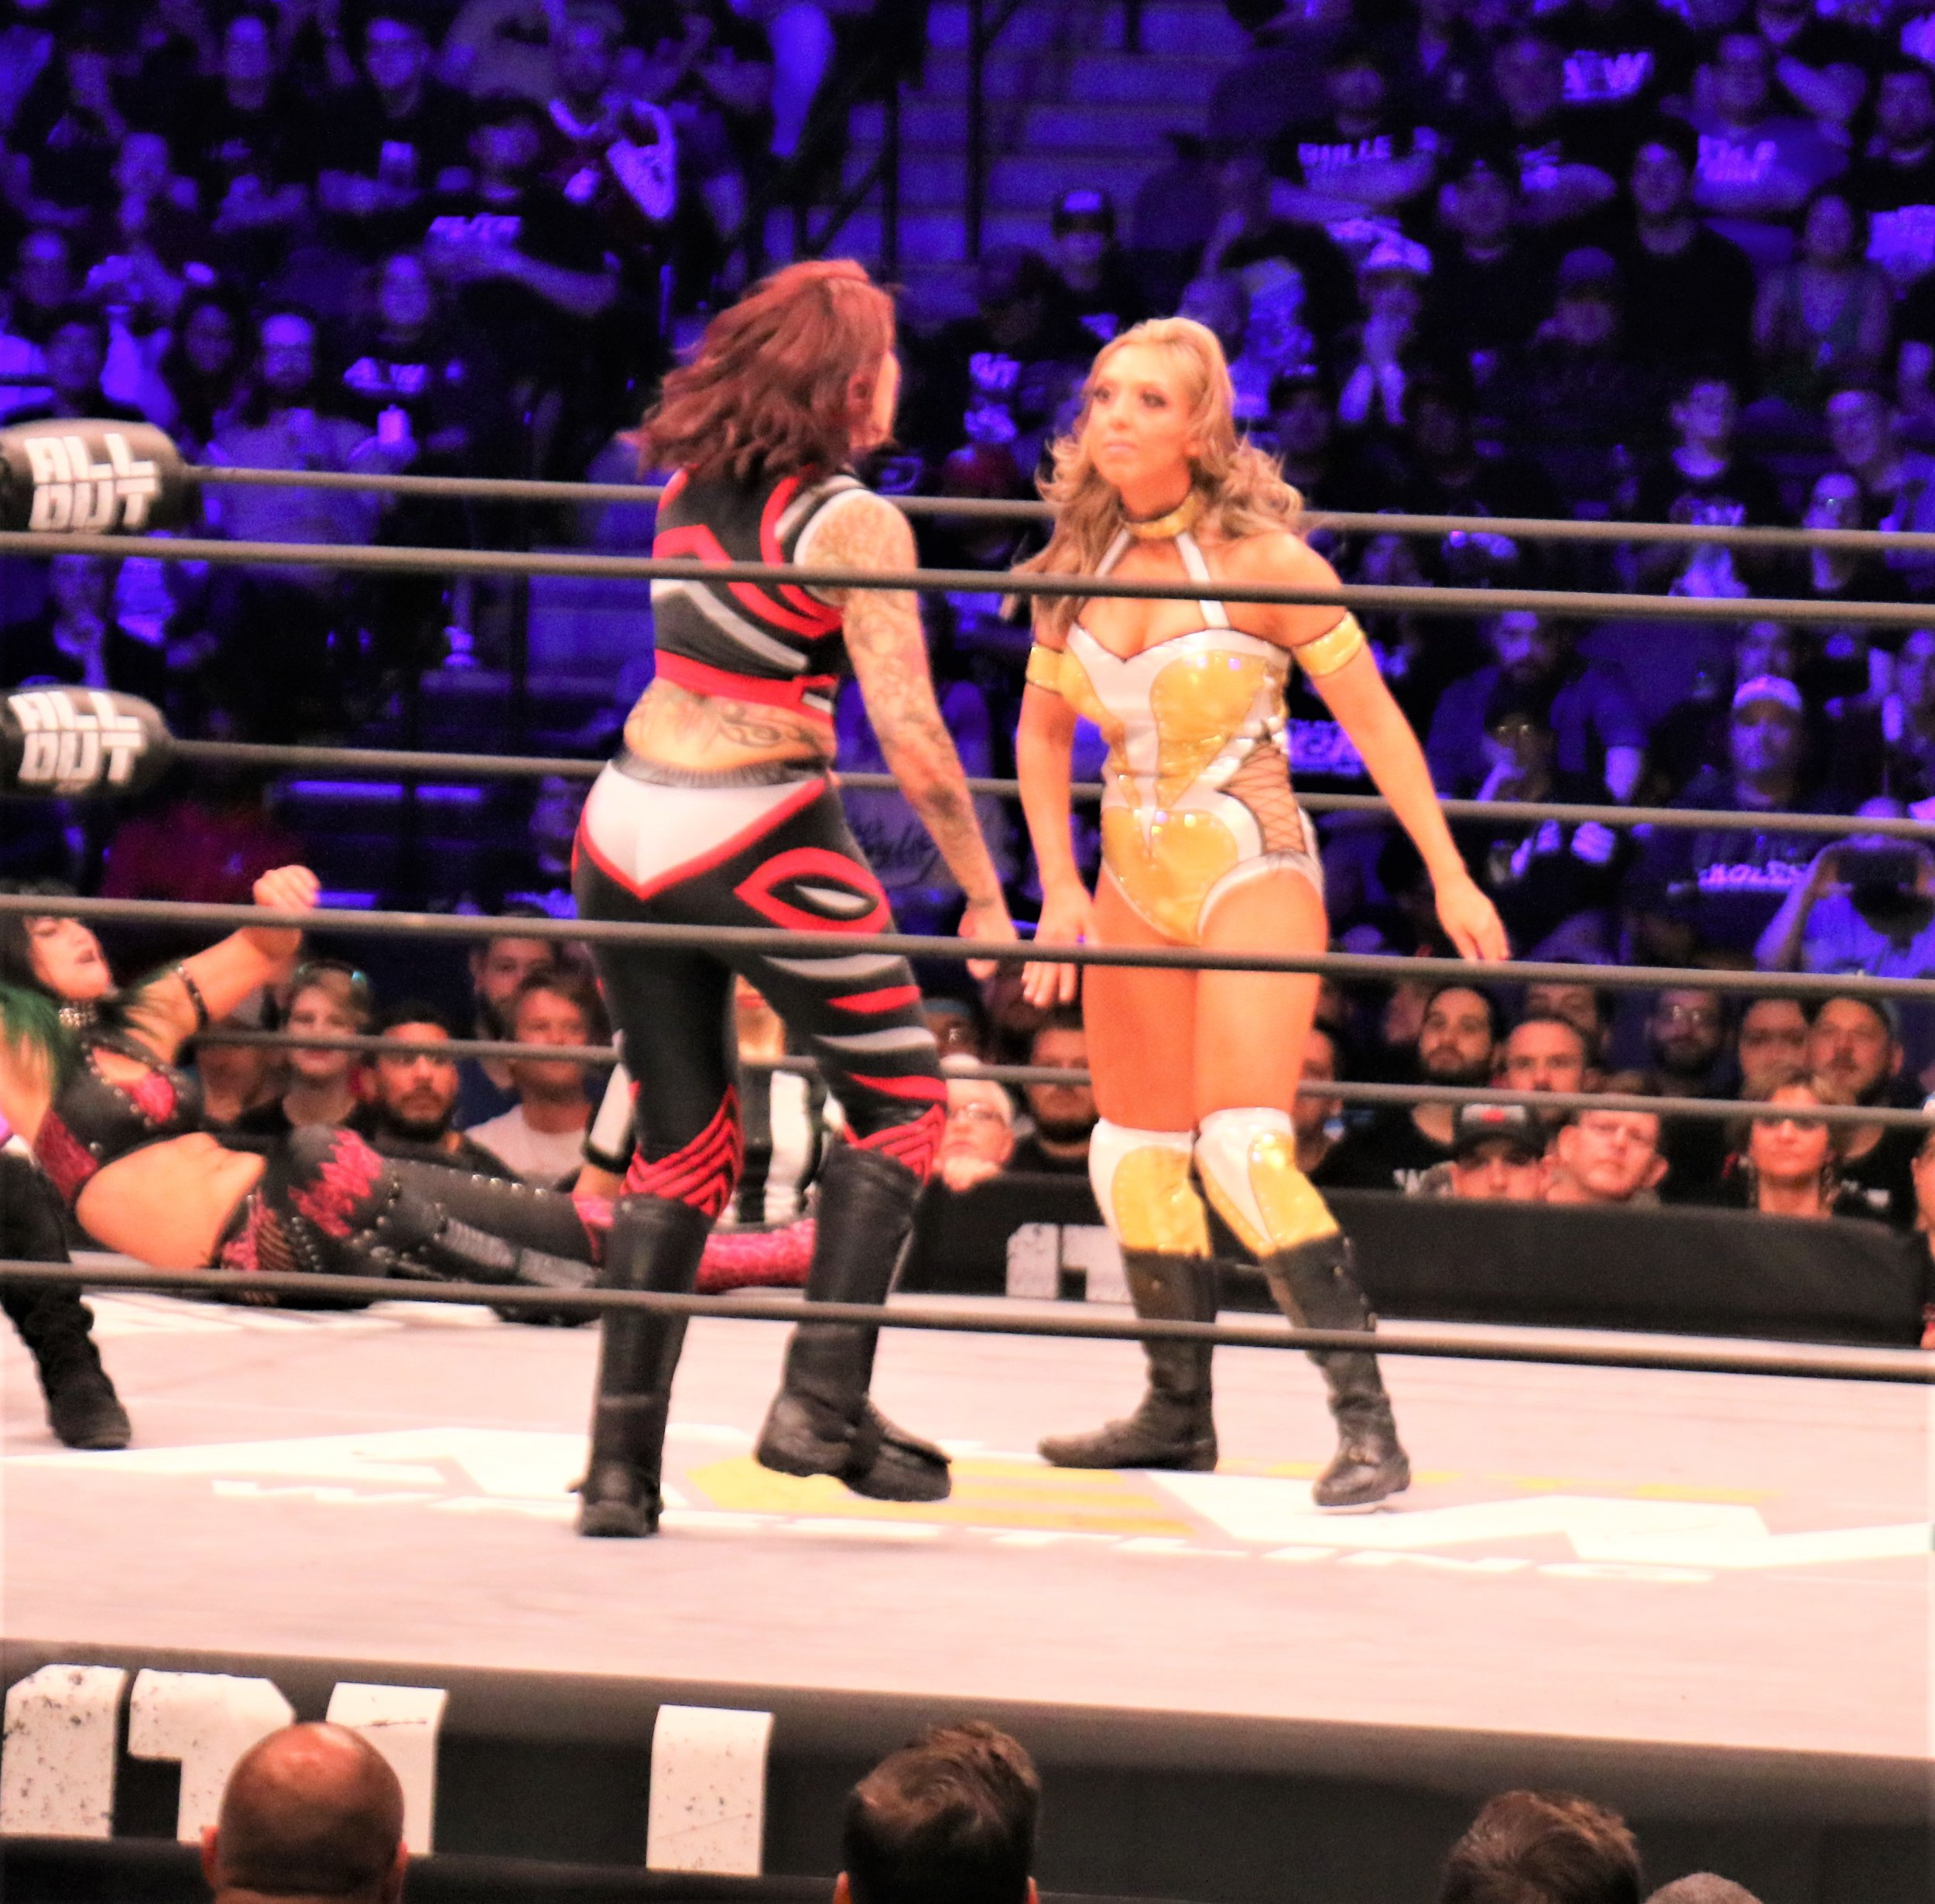 Mercedes Martinez faces off with Allie during the Casino Battle Royale.